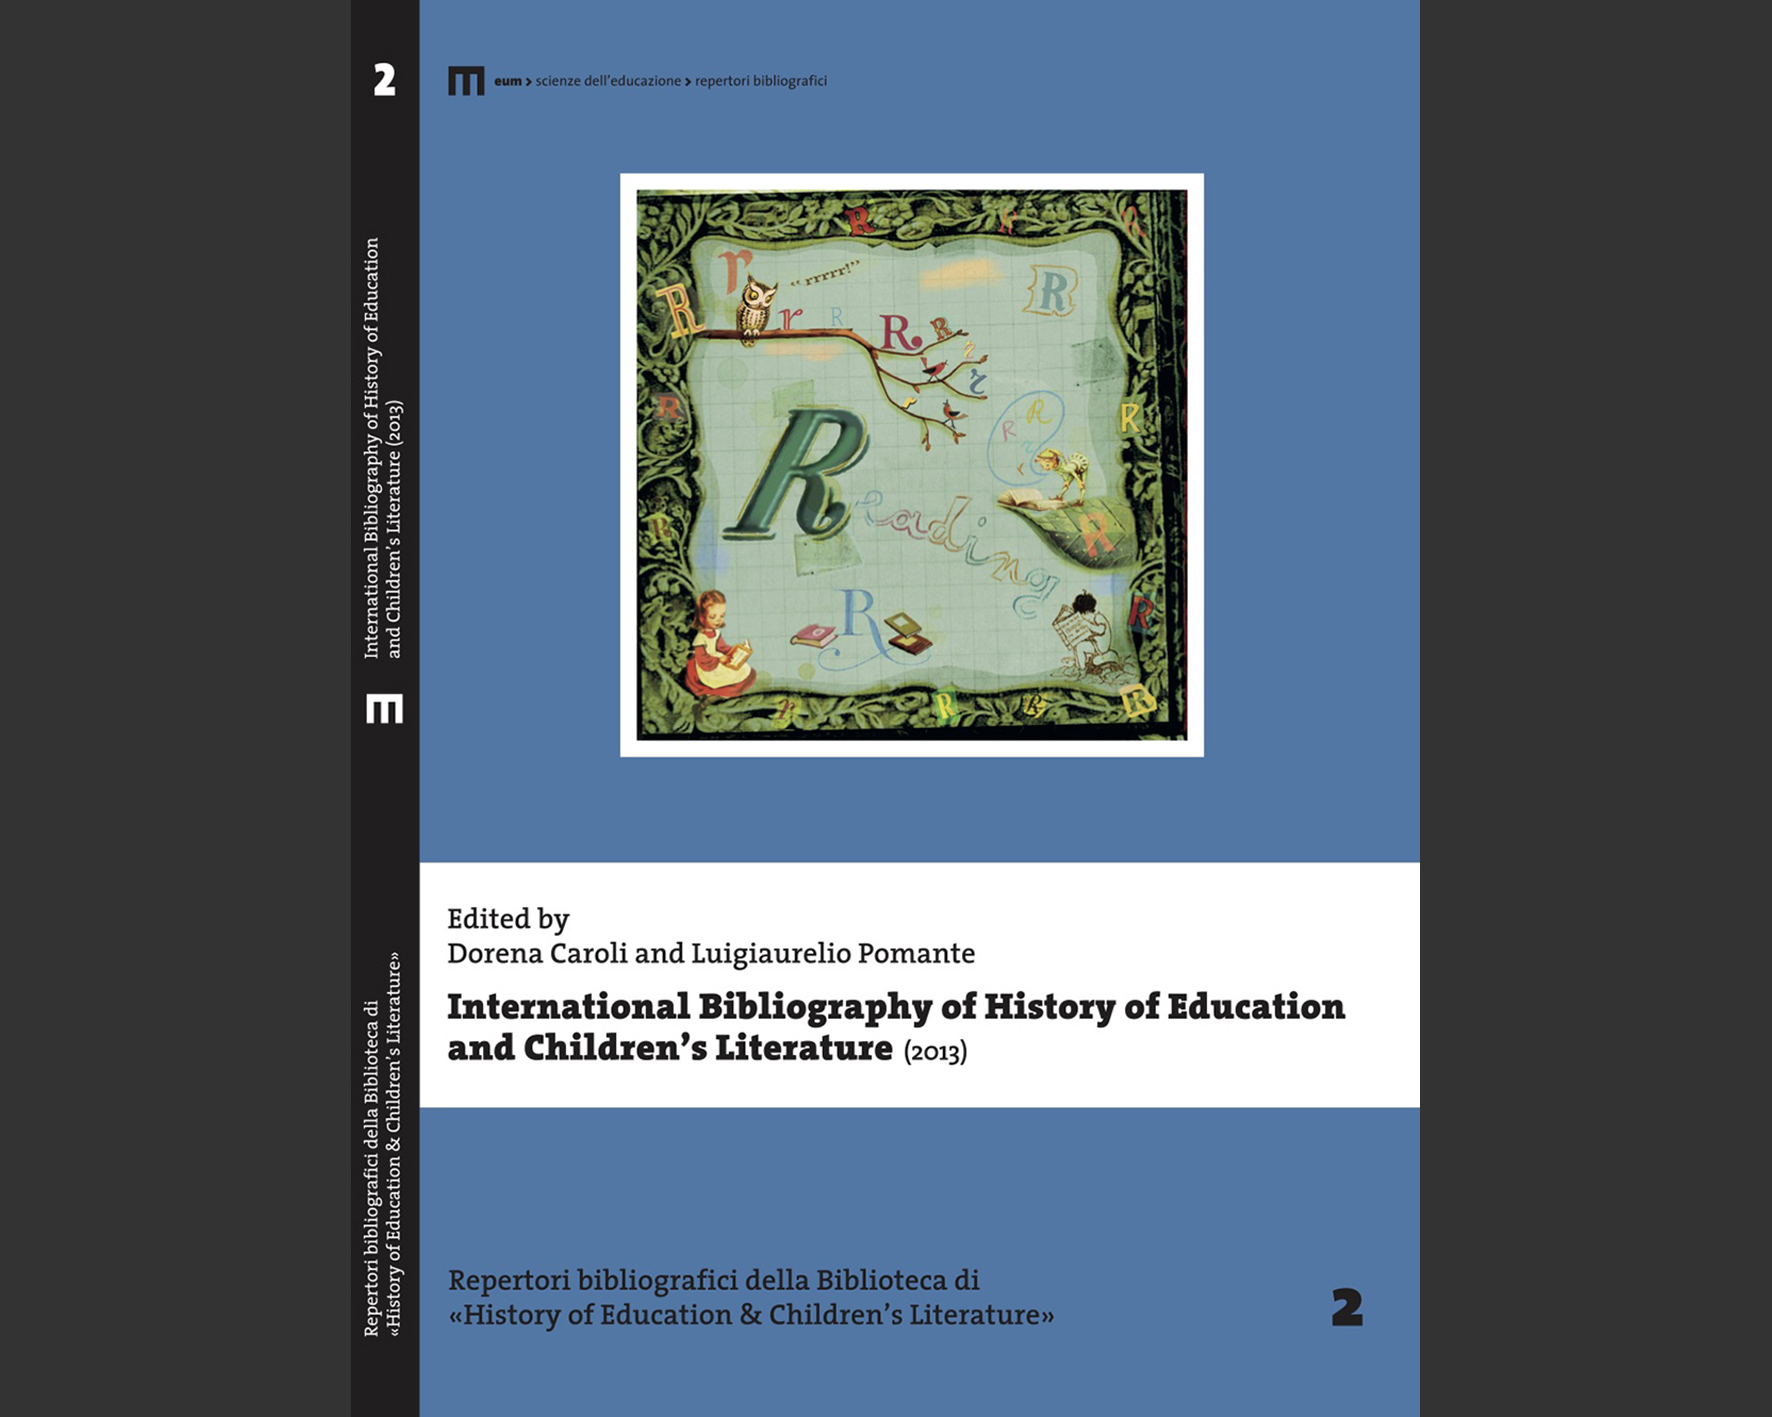 International Bibliography of History of Education and Children's Literature 2013